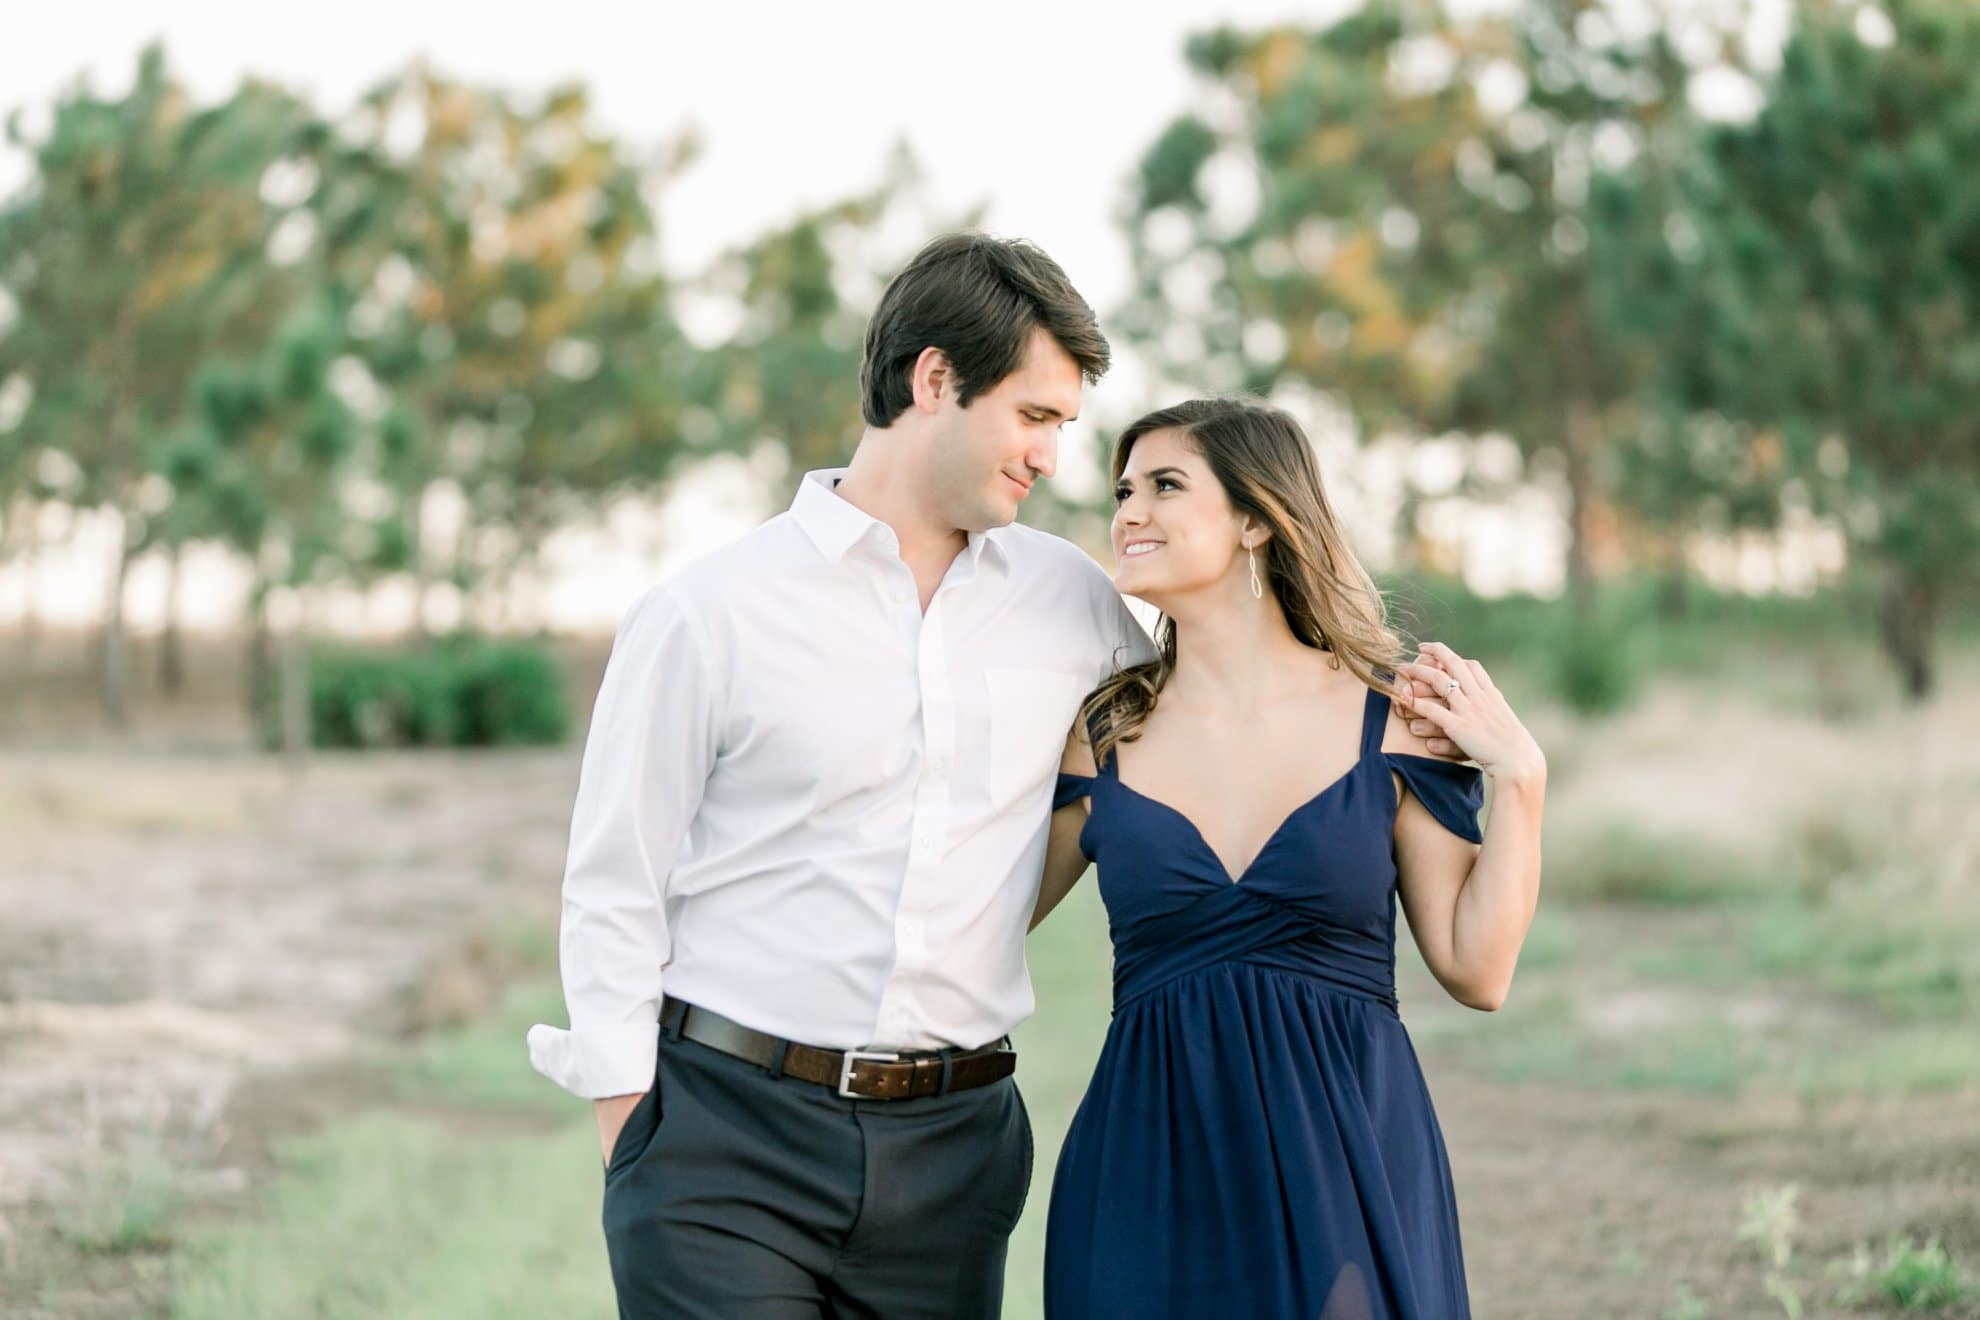 Bumby Photography - engagement photo shoot in nature